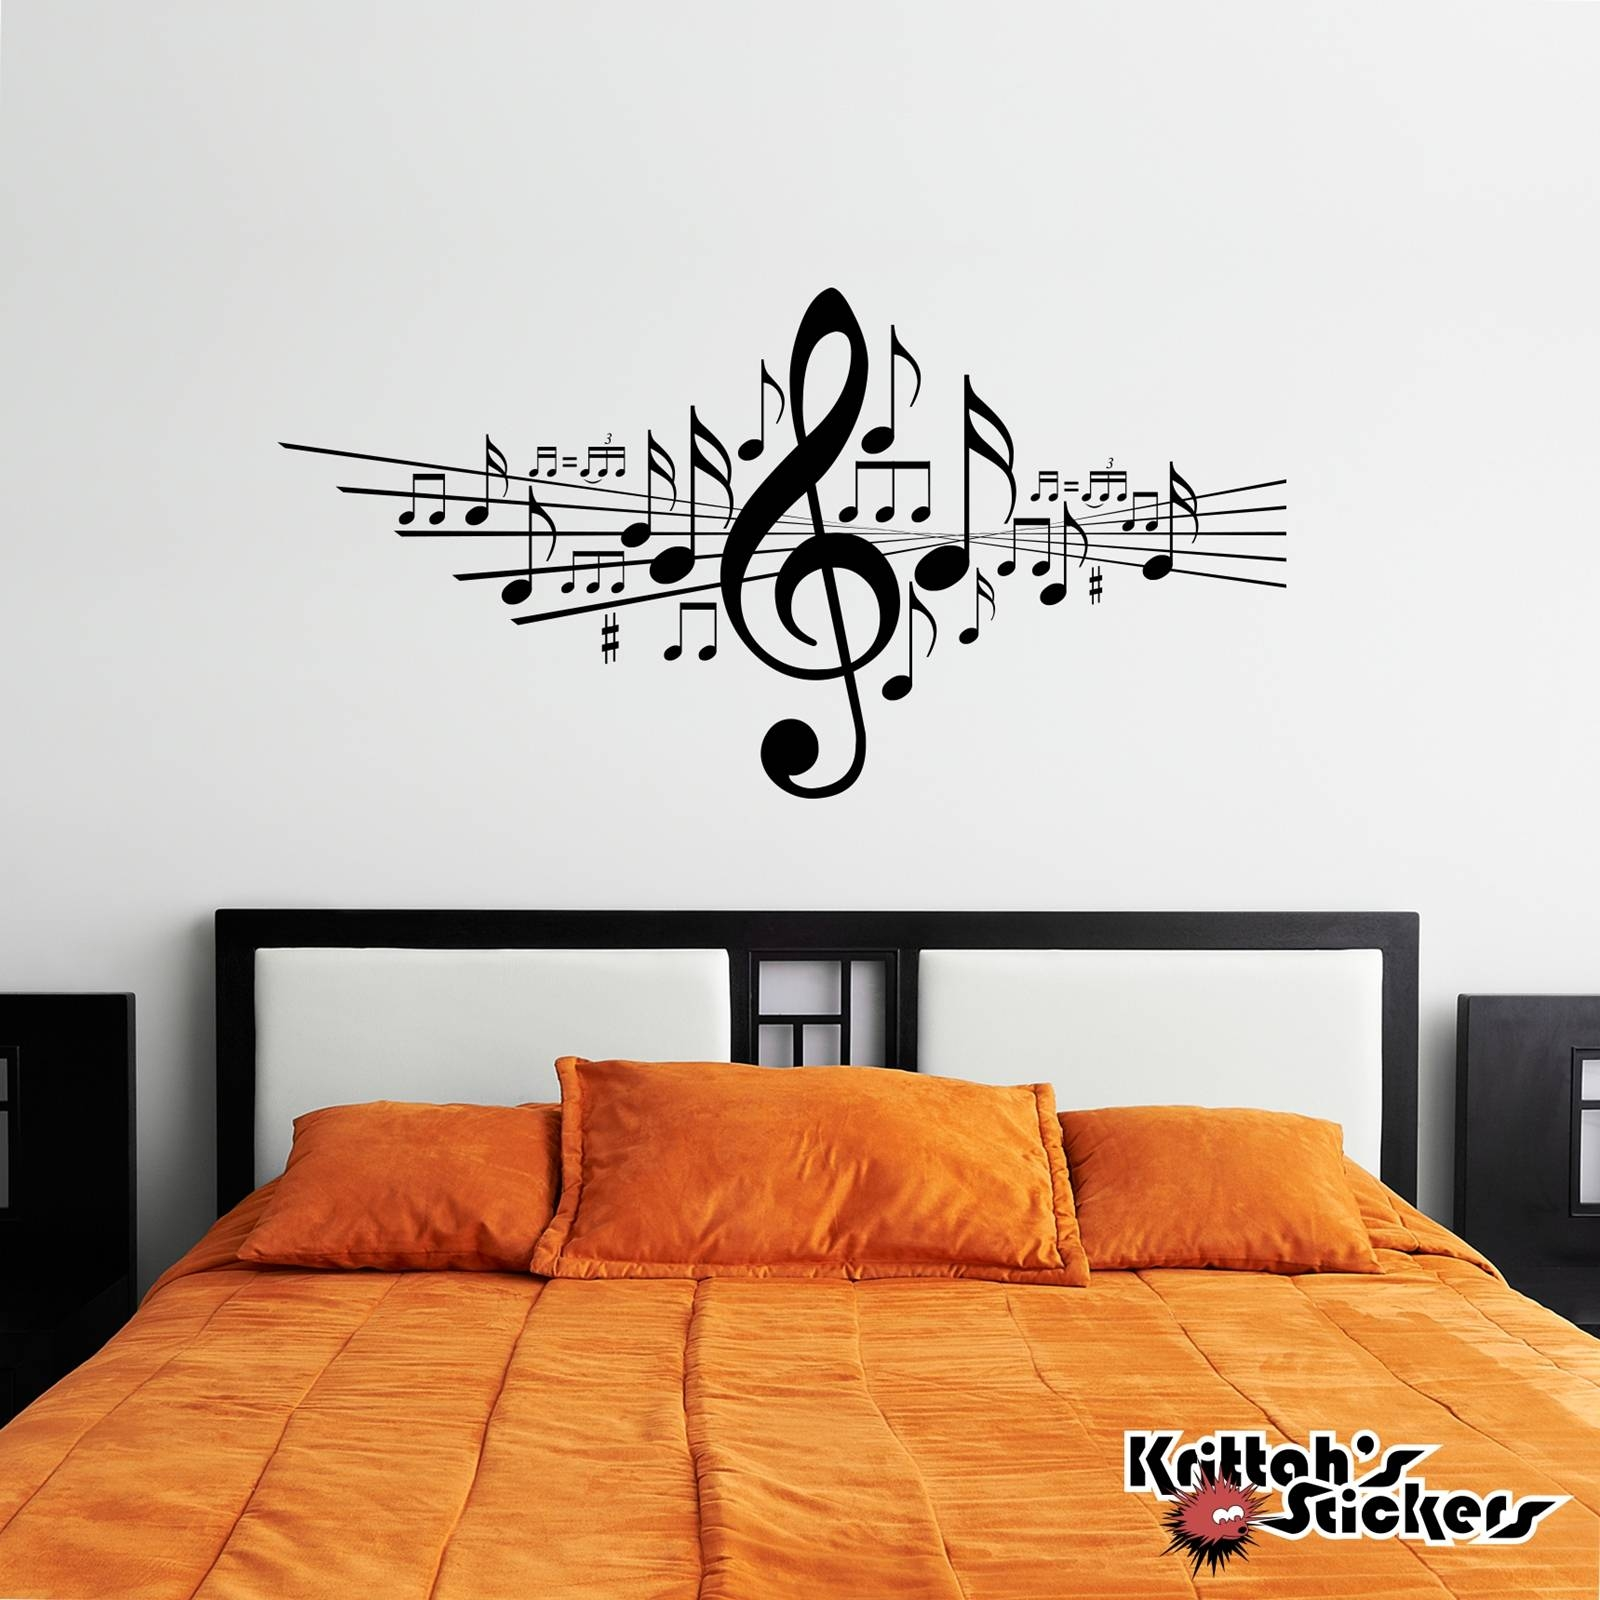 Photos Of Music Note Wall Art Decor Showing 6 20